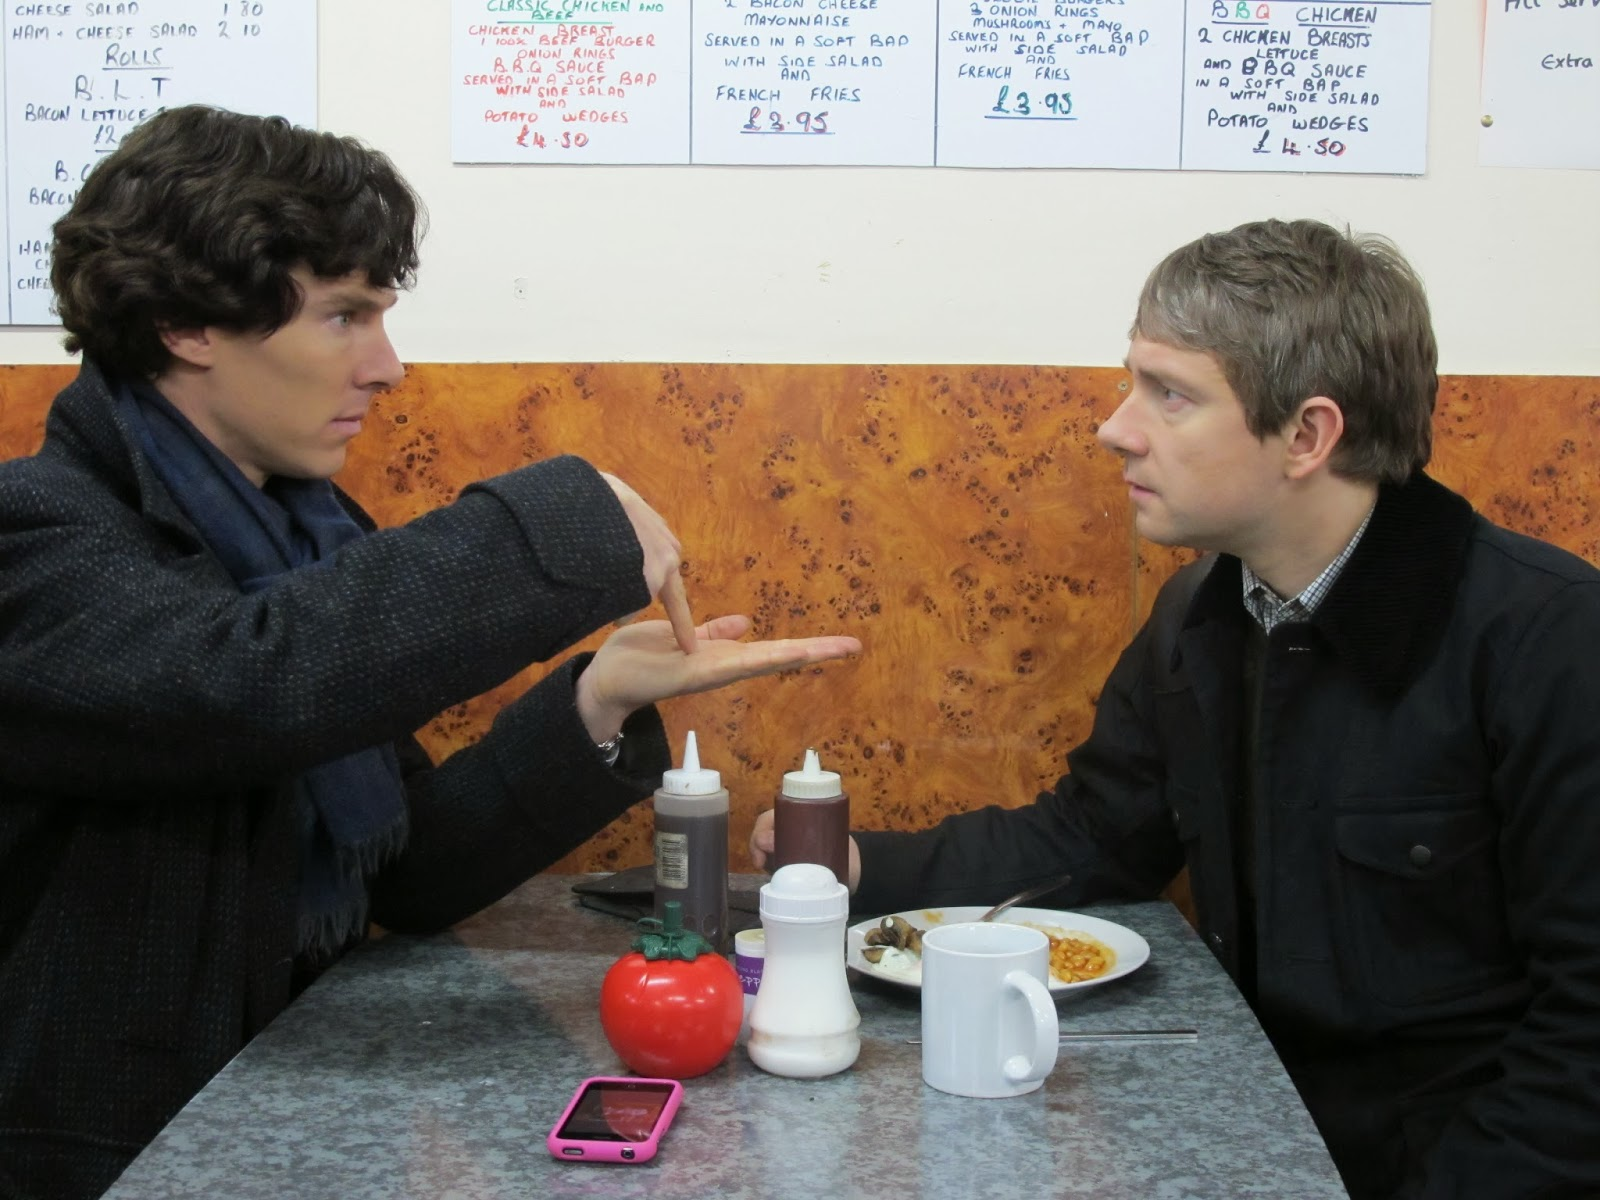 What are some good topics for an essay about bbc sherlock?